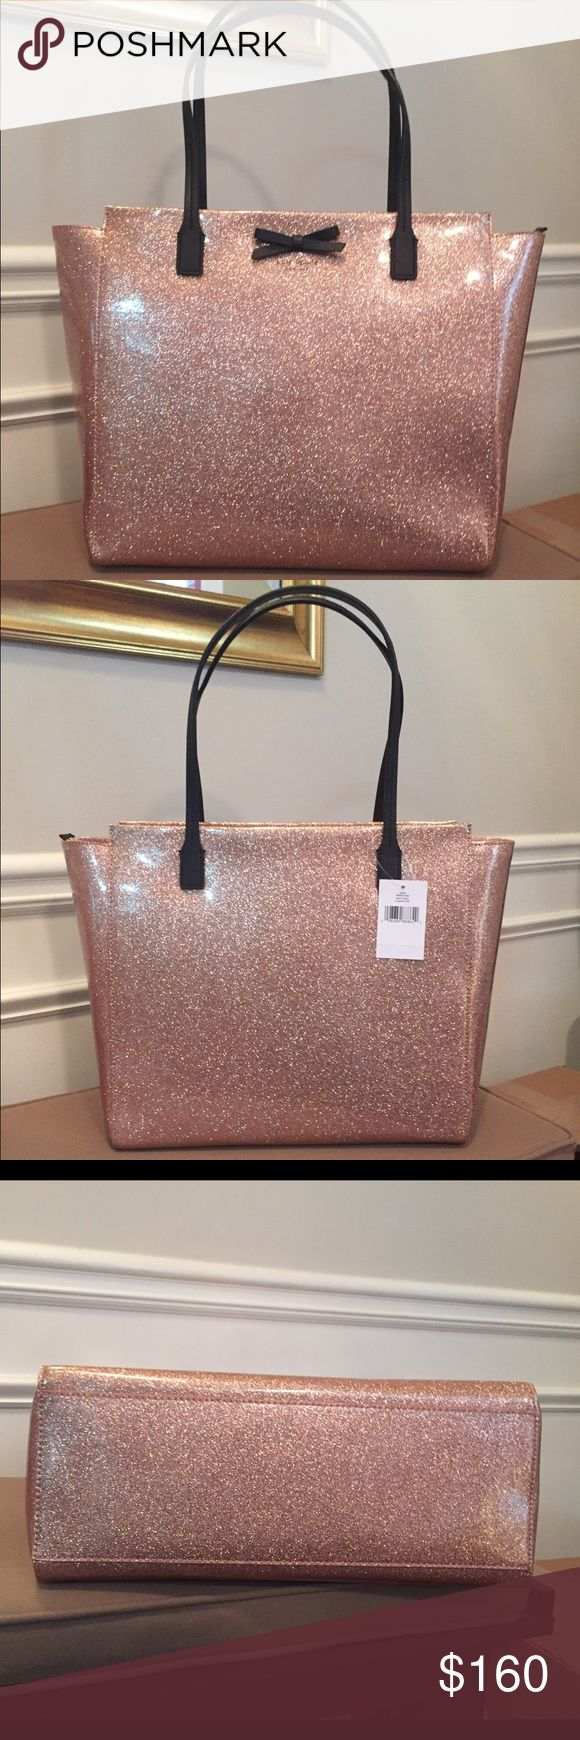 """Kate Spade Mavis Street Taden Tote New with tag! Gorgeous rose gold glitter zip top Kate Spade tote. Inside has zip pocket and two slip pockets. Bow detail on front. Absolutely stunning! Measures about 13.5""""L x 12""""H x 6""""W. Strap drop about 8"""". Smoke free, pet free home. kate spade Bags Totes"""